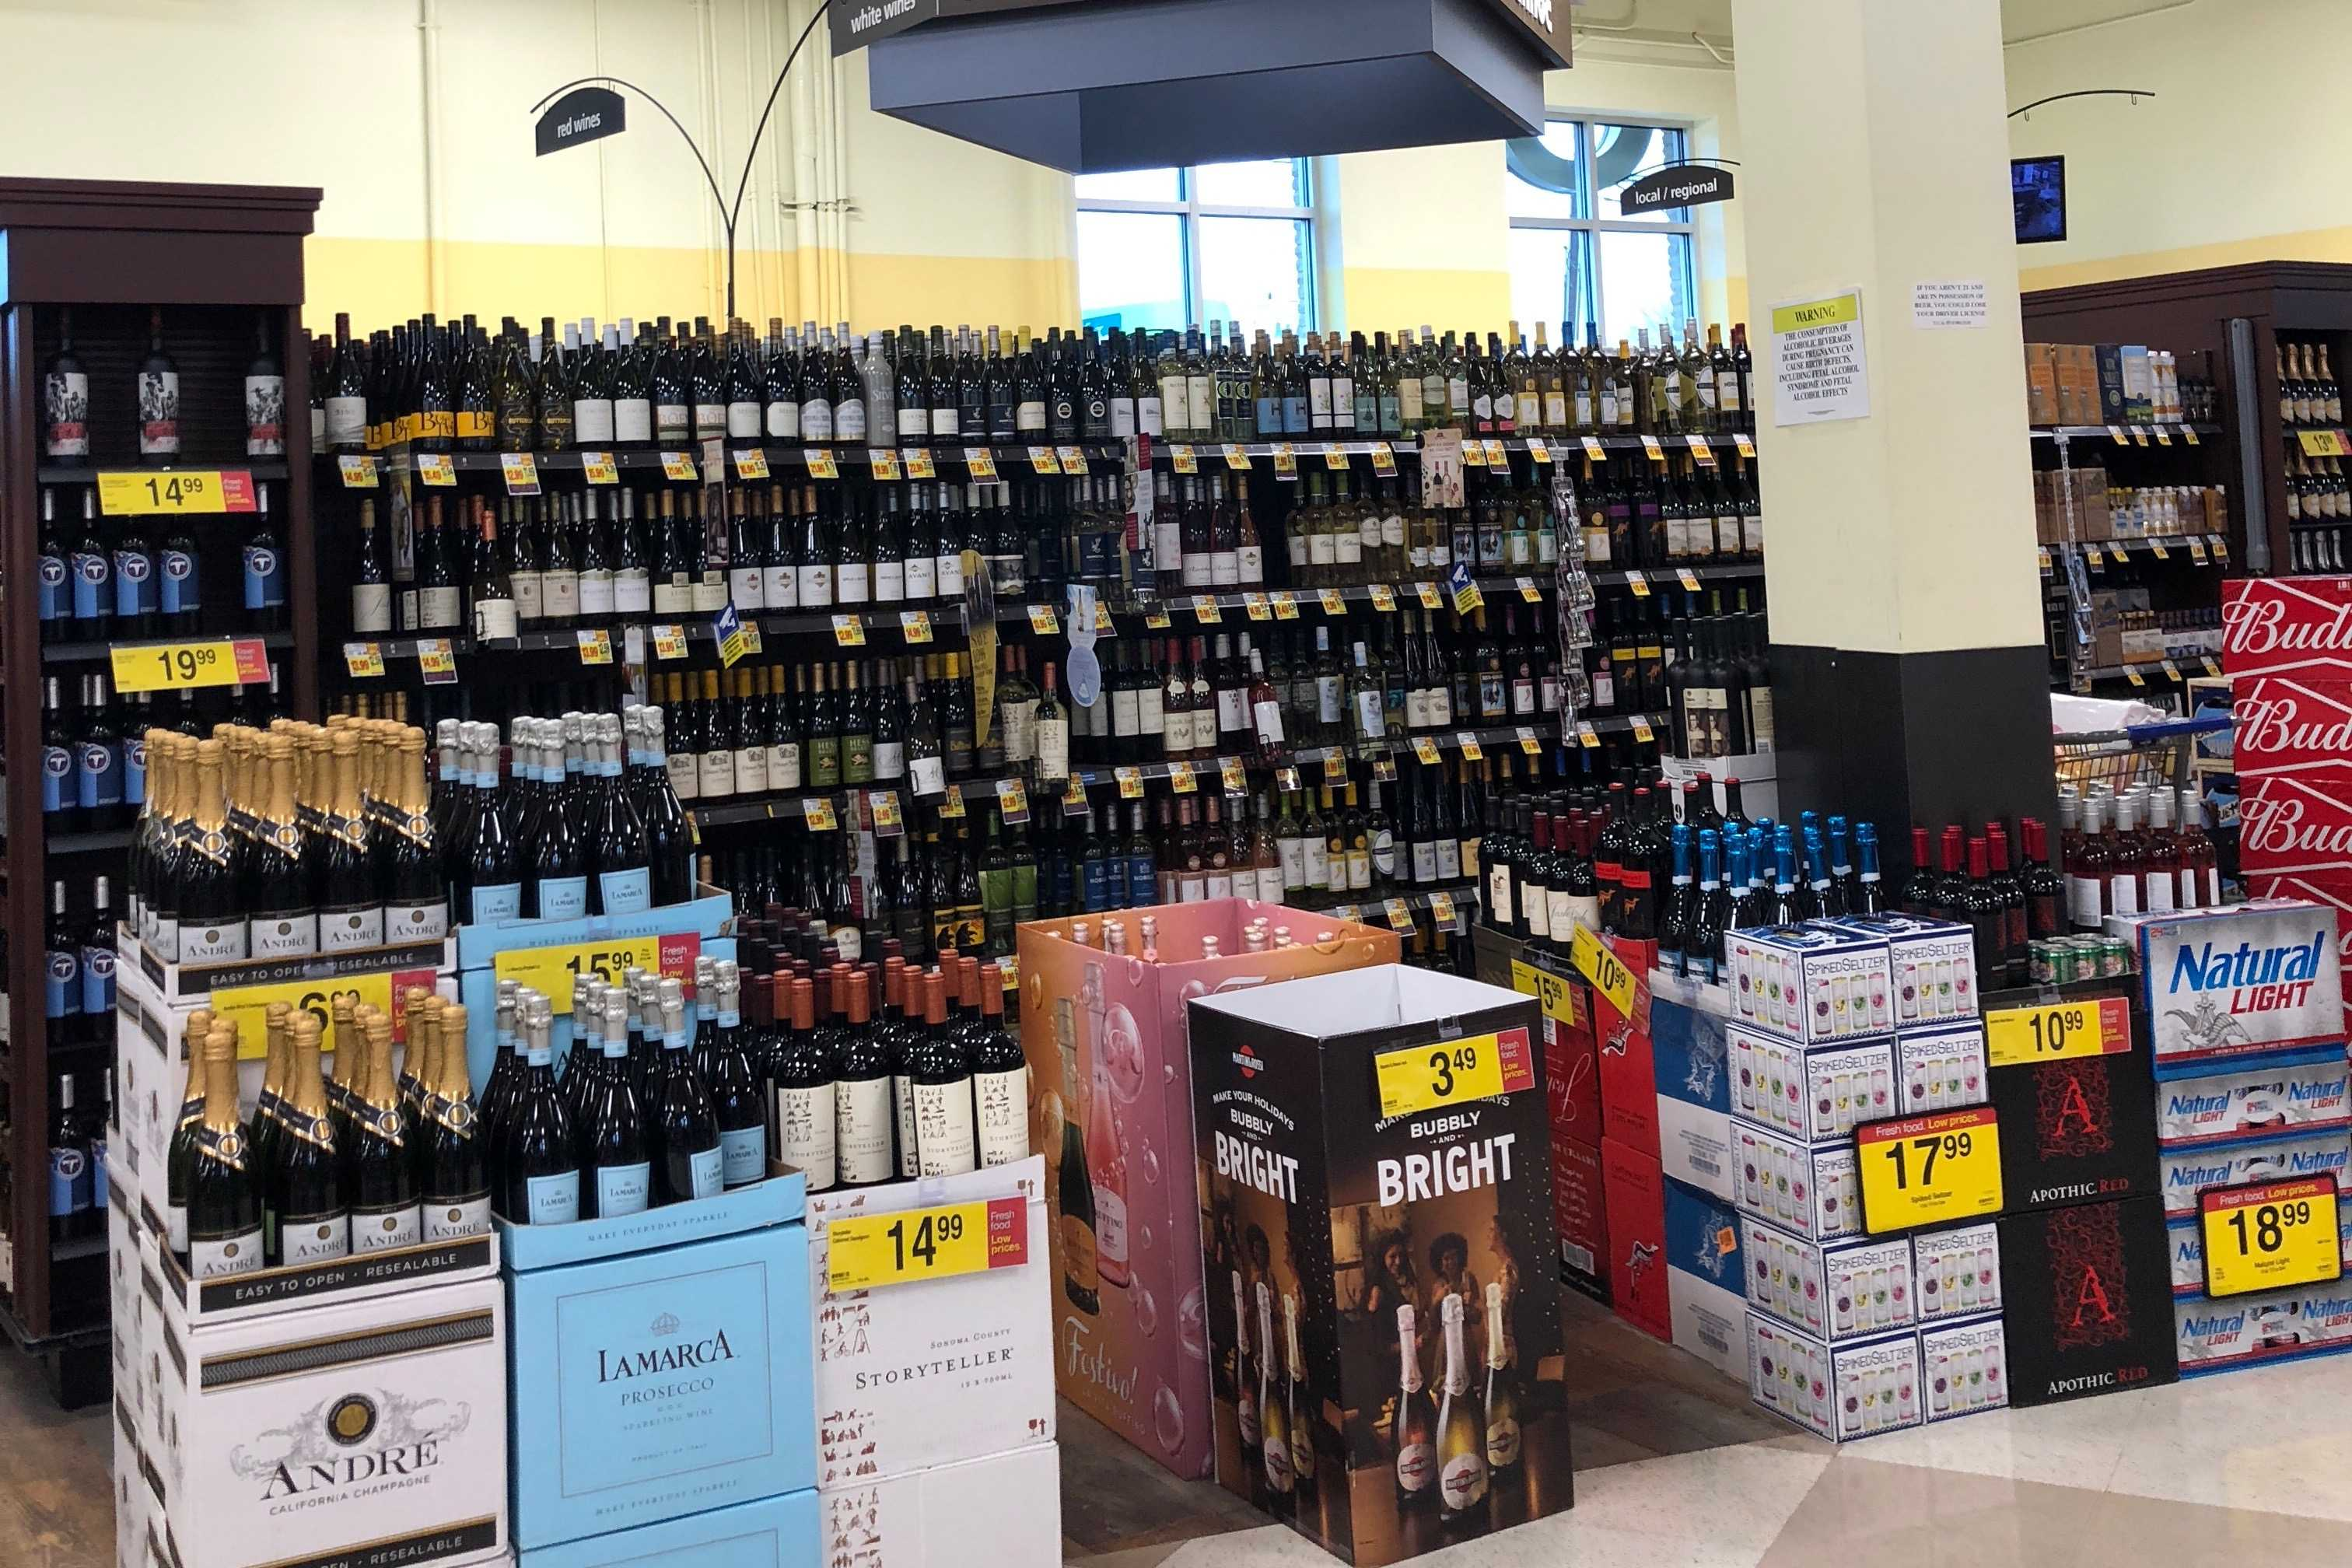 The alcohol sales section at Kroger Grocery Store on 21st Ave. (Photo by Rachel Friedman)